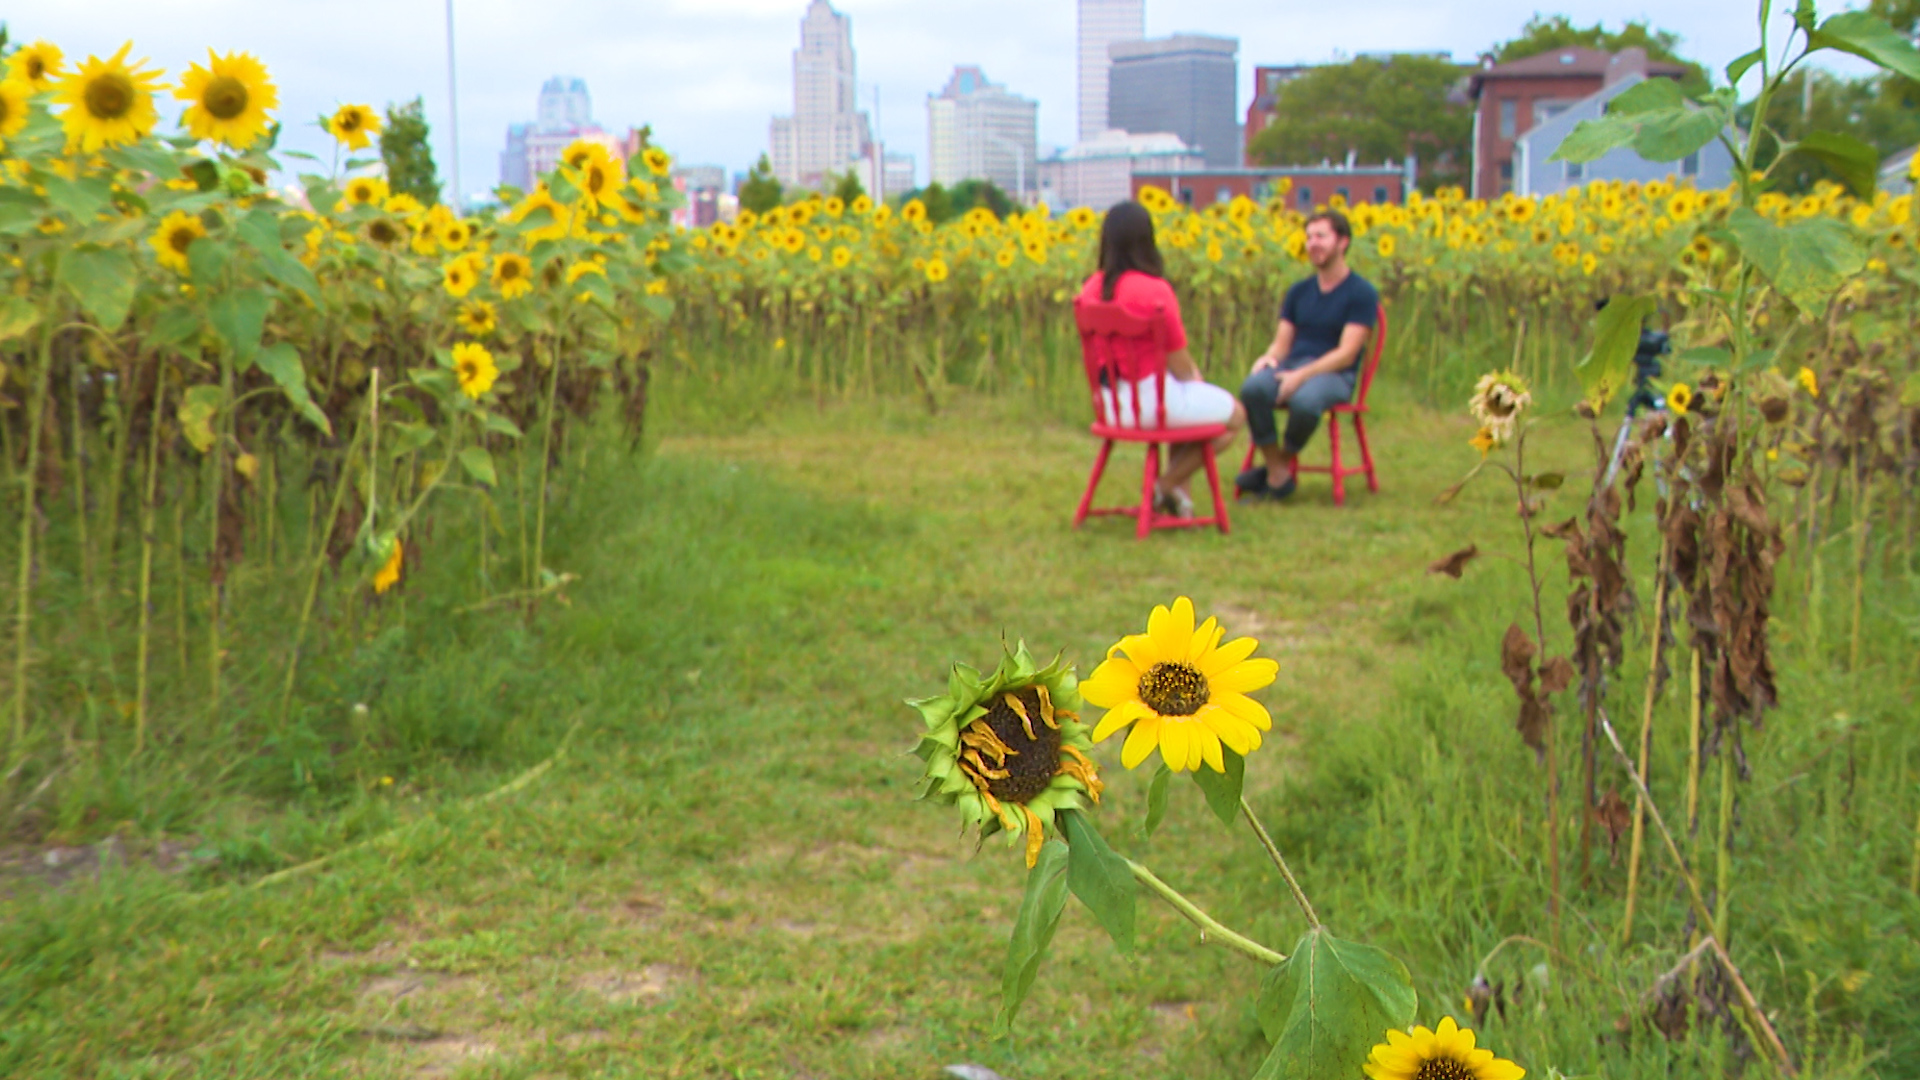 Sunflower Garden Brightens Vacant I 195 Land In Annual Tradition